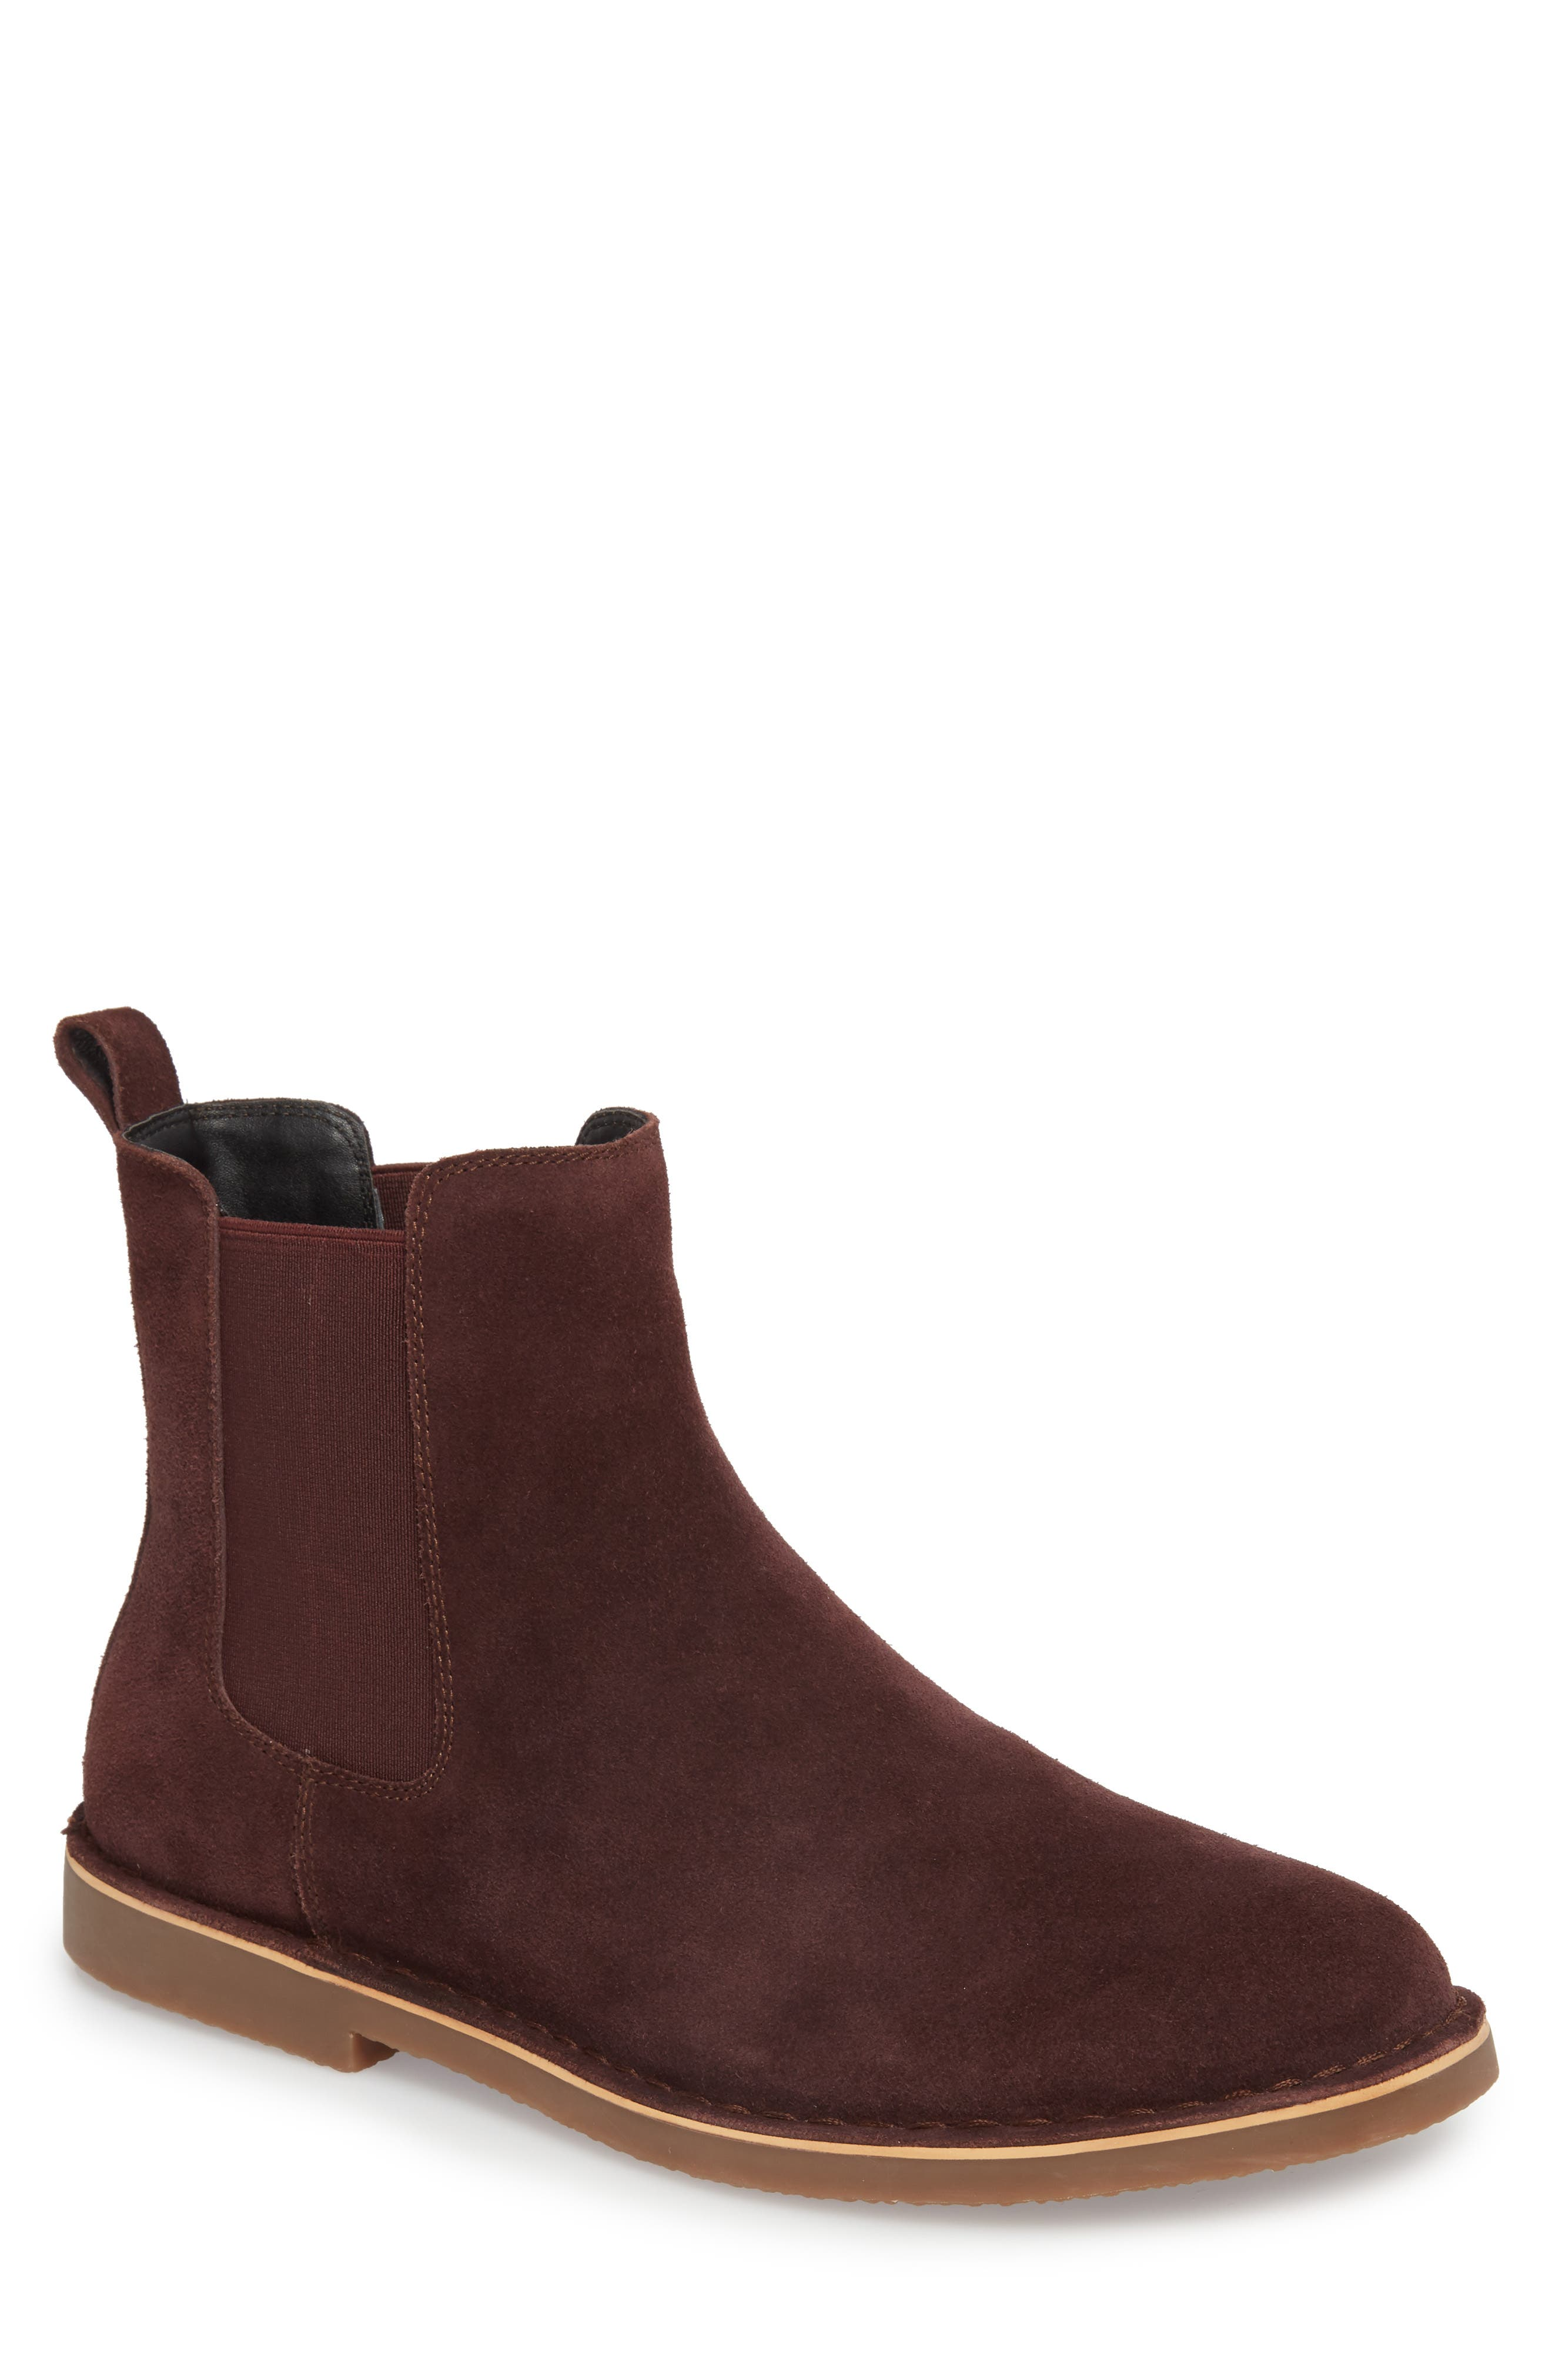 Mesa Chelsea Boot,                         Main,                         color, BURGUNDY SUEDE